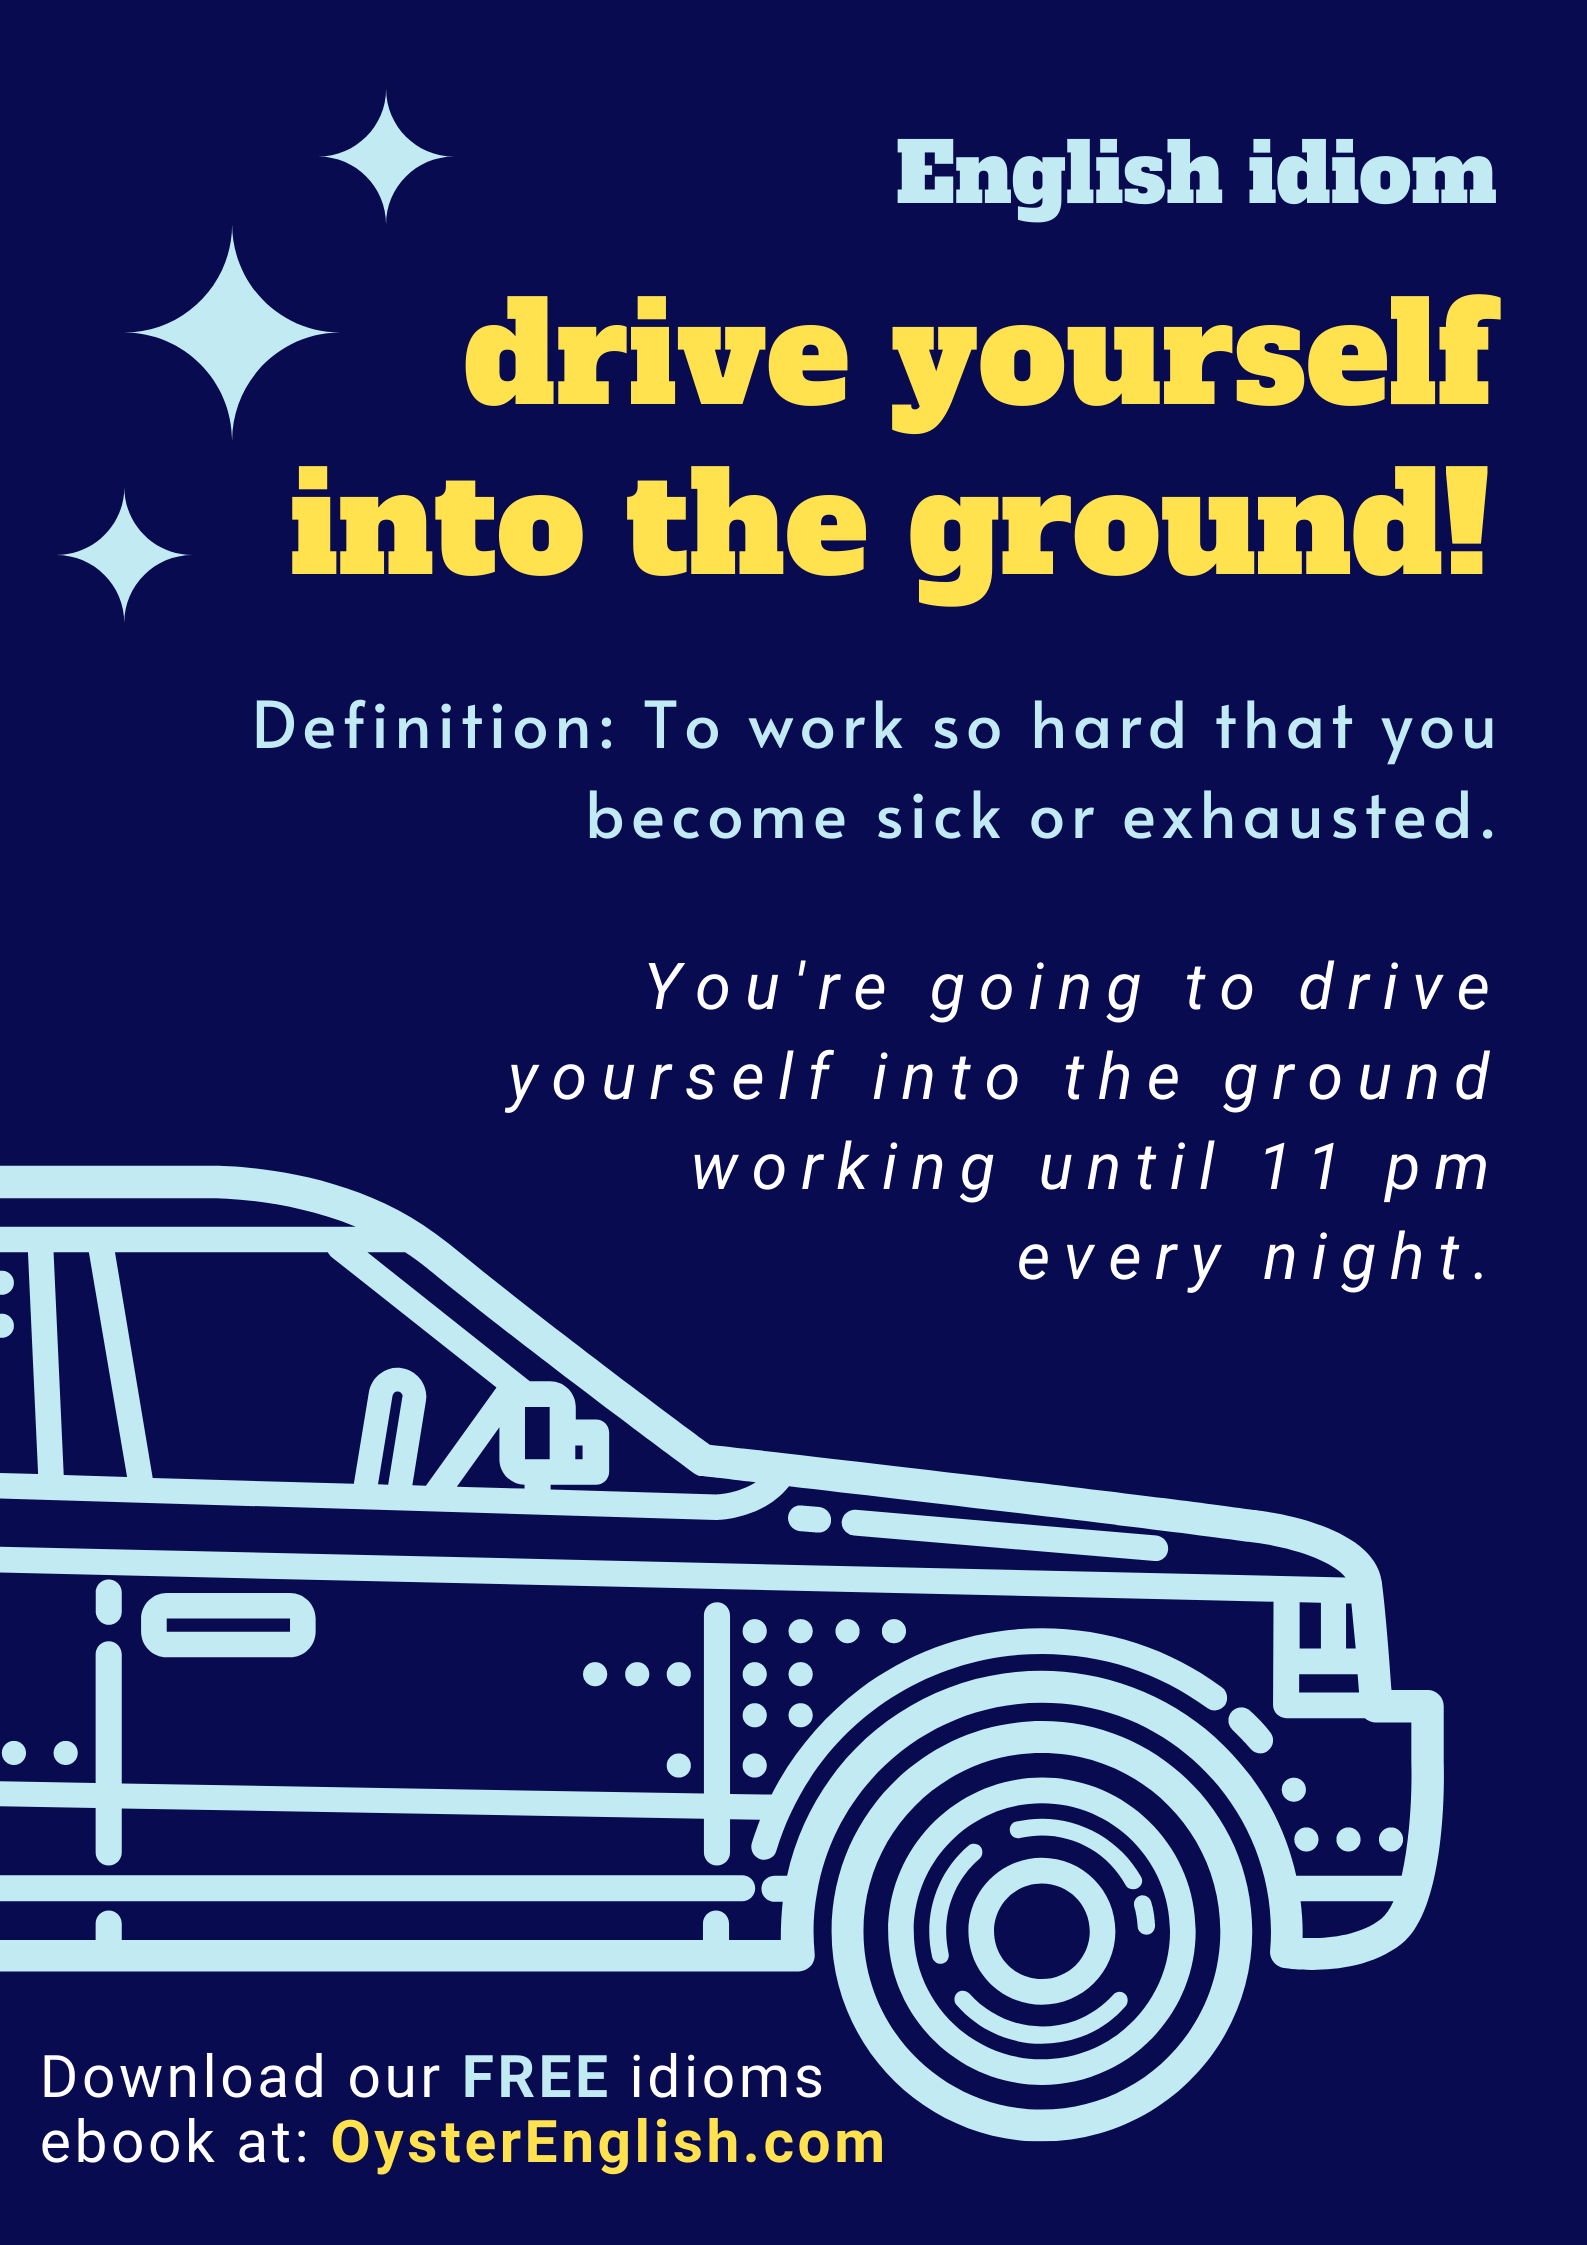 Picture of car and idiom definition + example: You're going to drive yourself into the ground working until 11 pm every night.